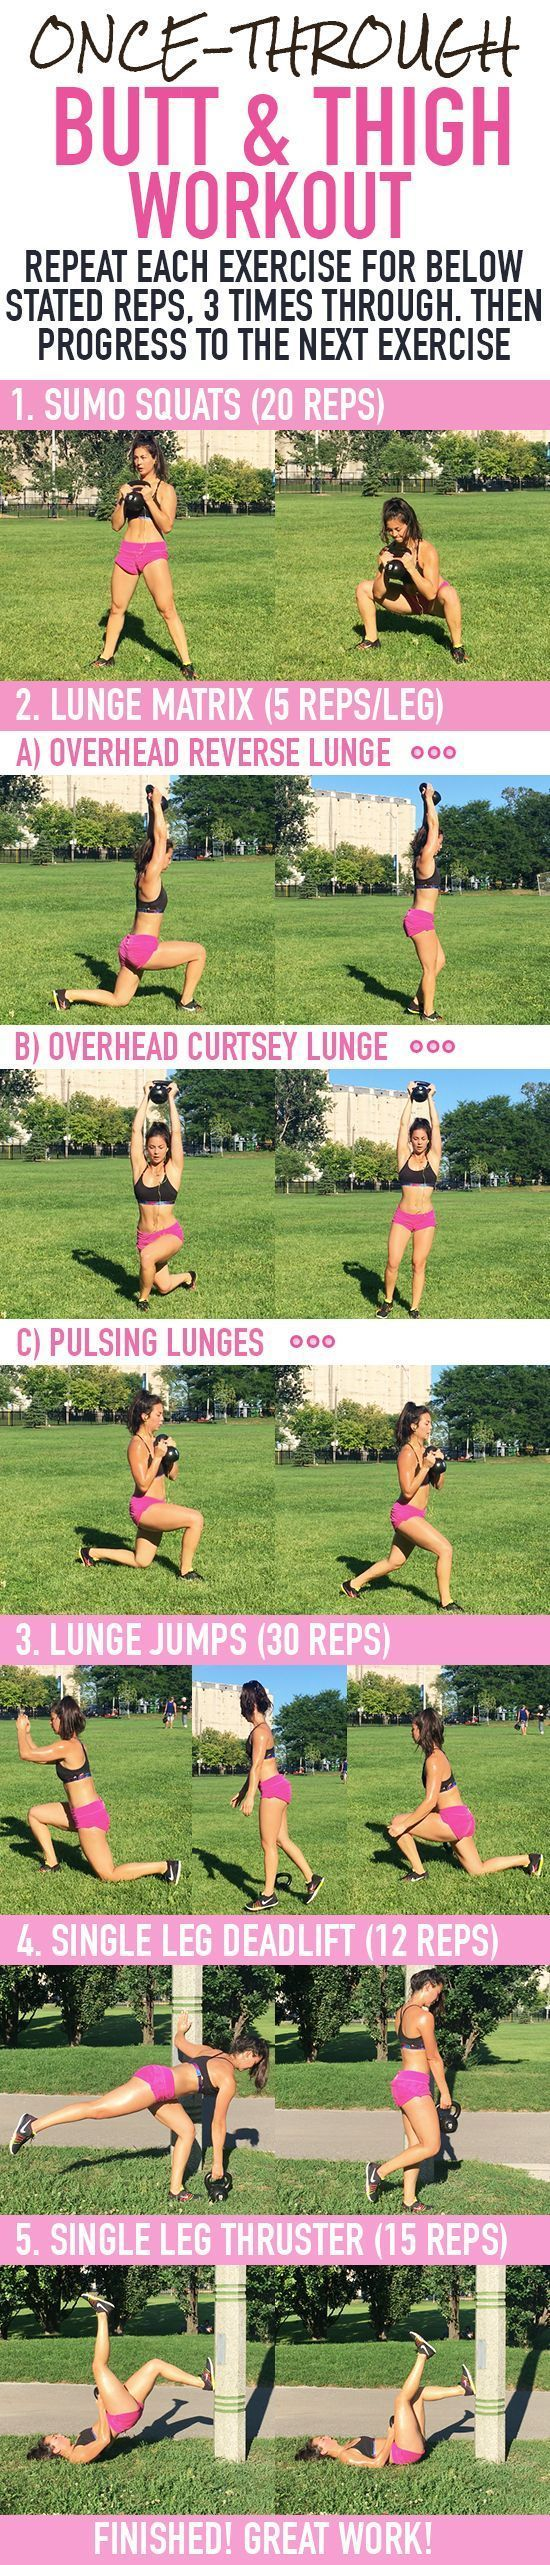 Once Through Butt & Thigh Workout! This workout which includes single leg deadlifts, lunge pulses, sumo squats and more will get your muscles burning! The meaty part of your bum will be feeling this for days! https://www.kettlebellmaniac.com/kettlebell-exercises/